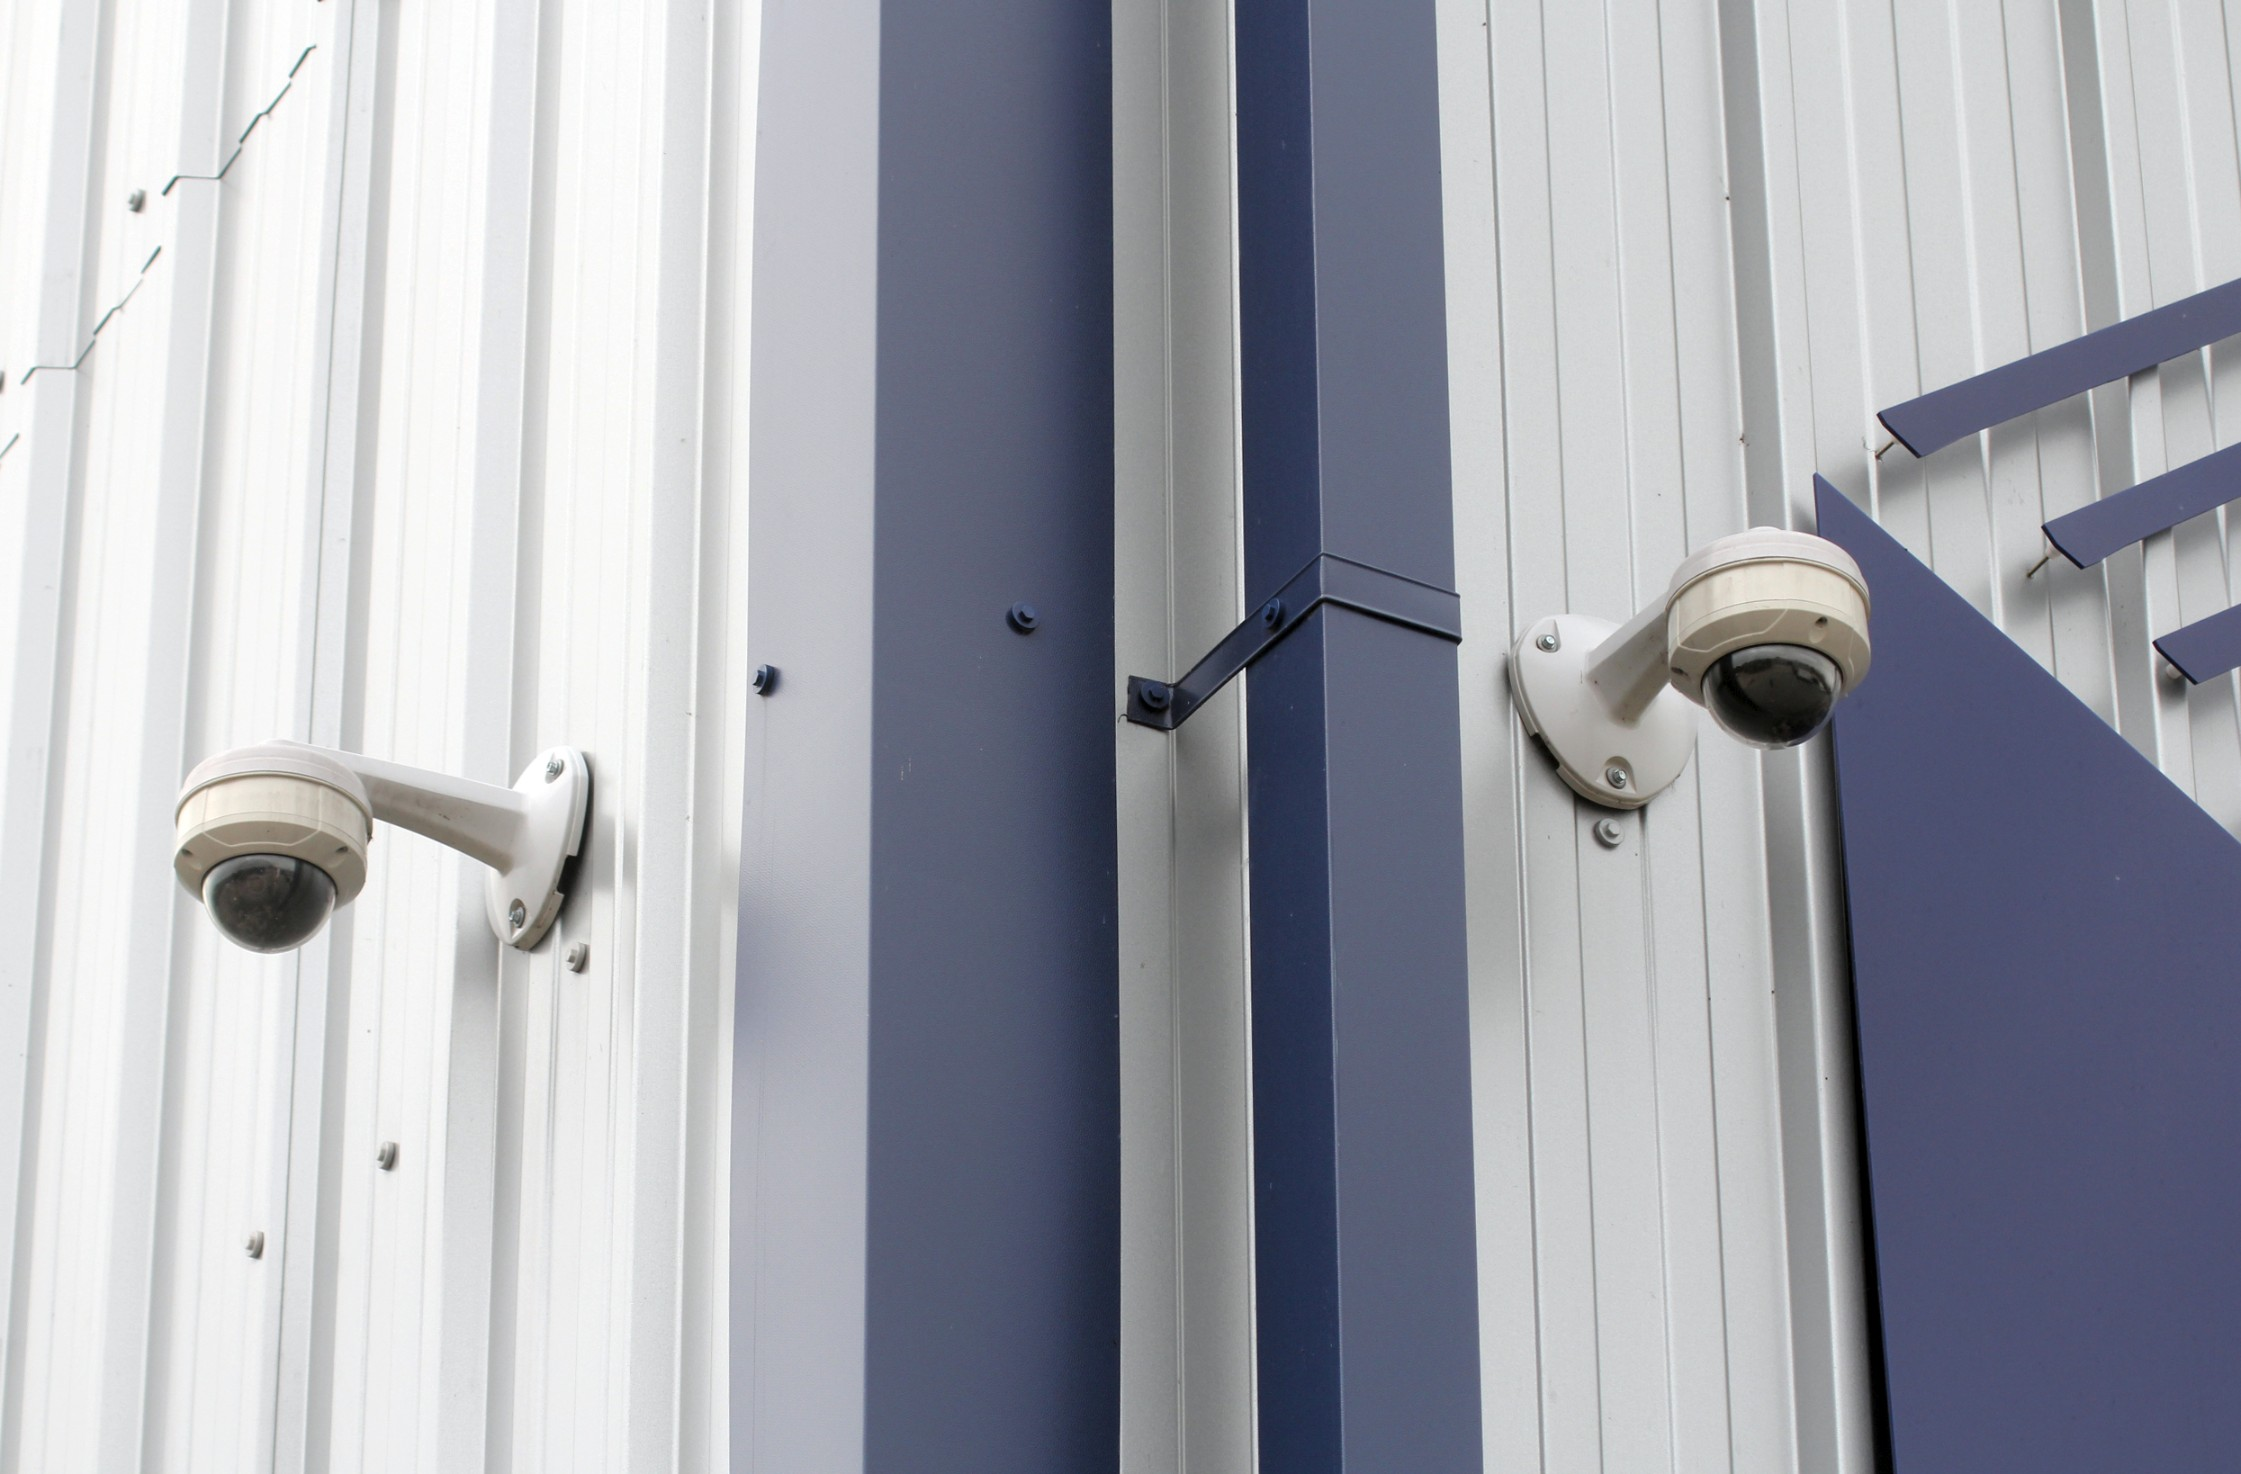 Secure storage facility with CCTV